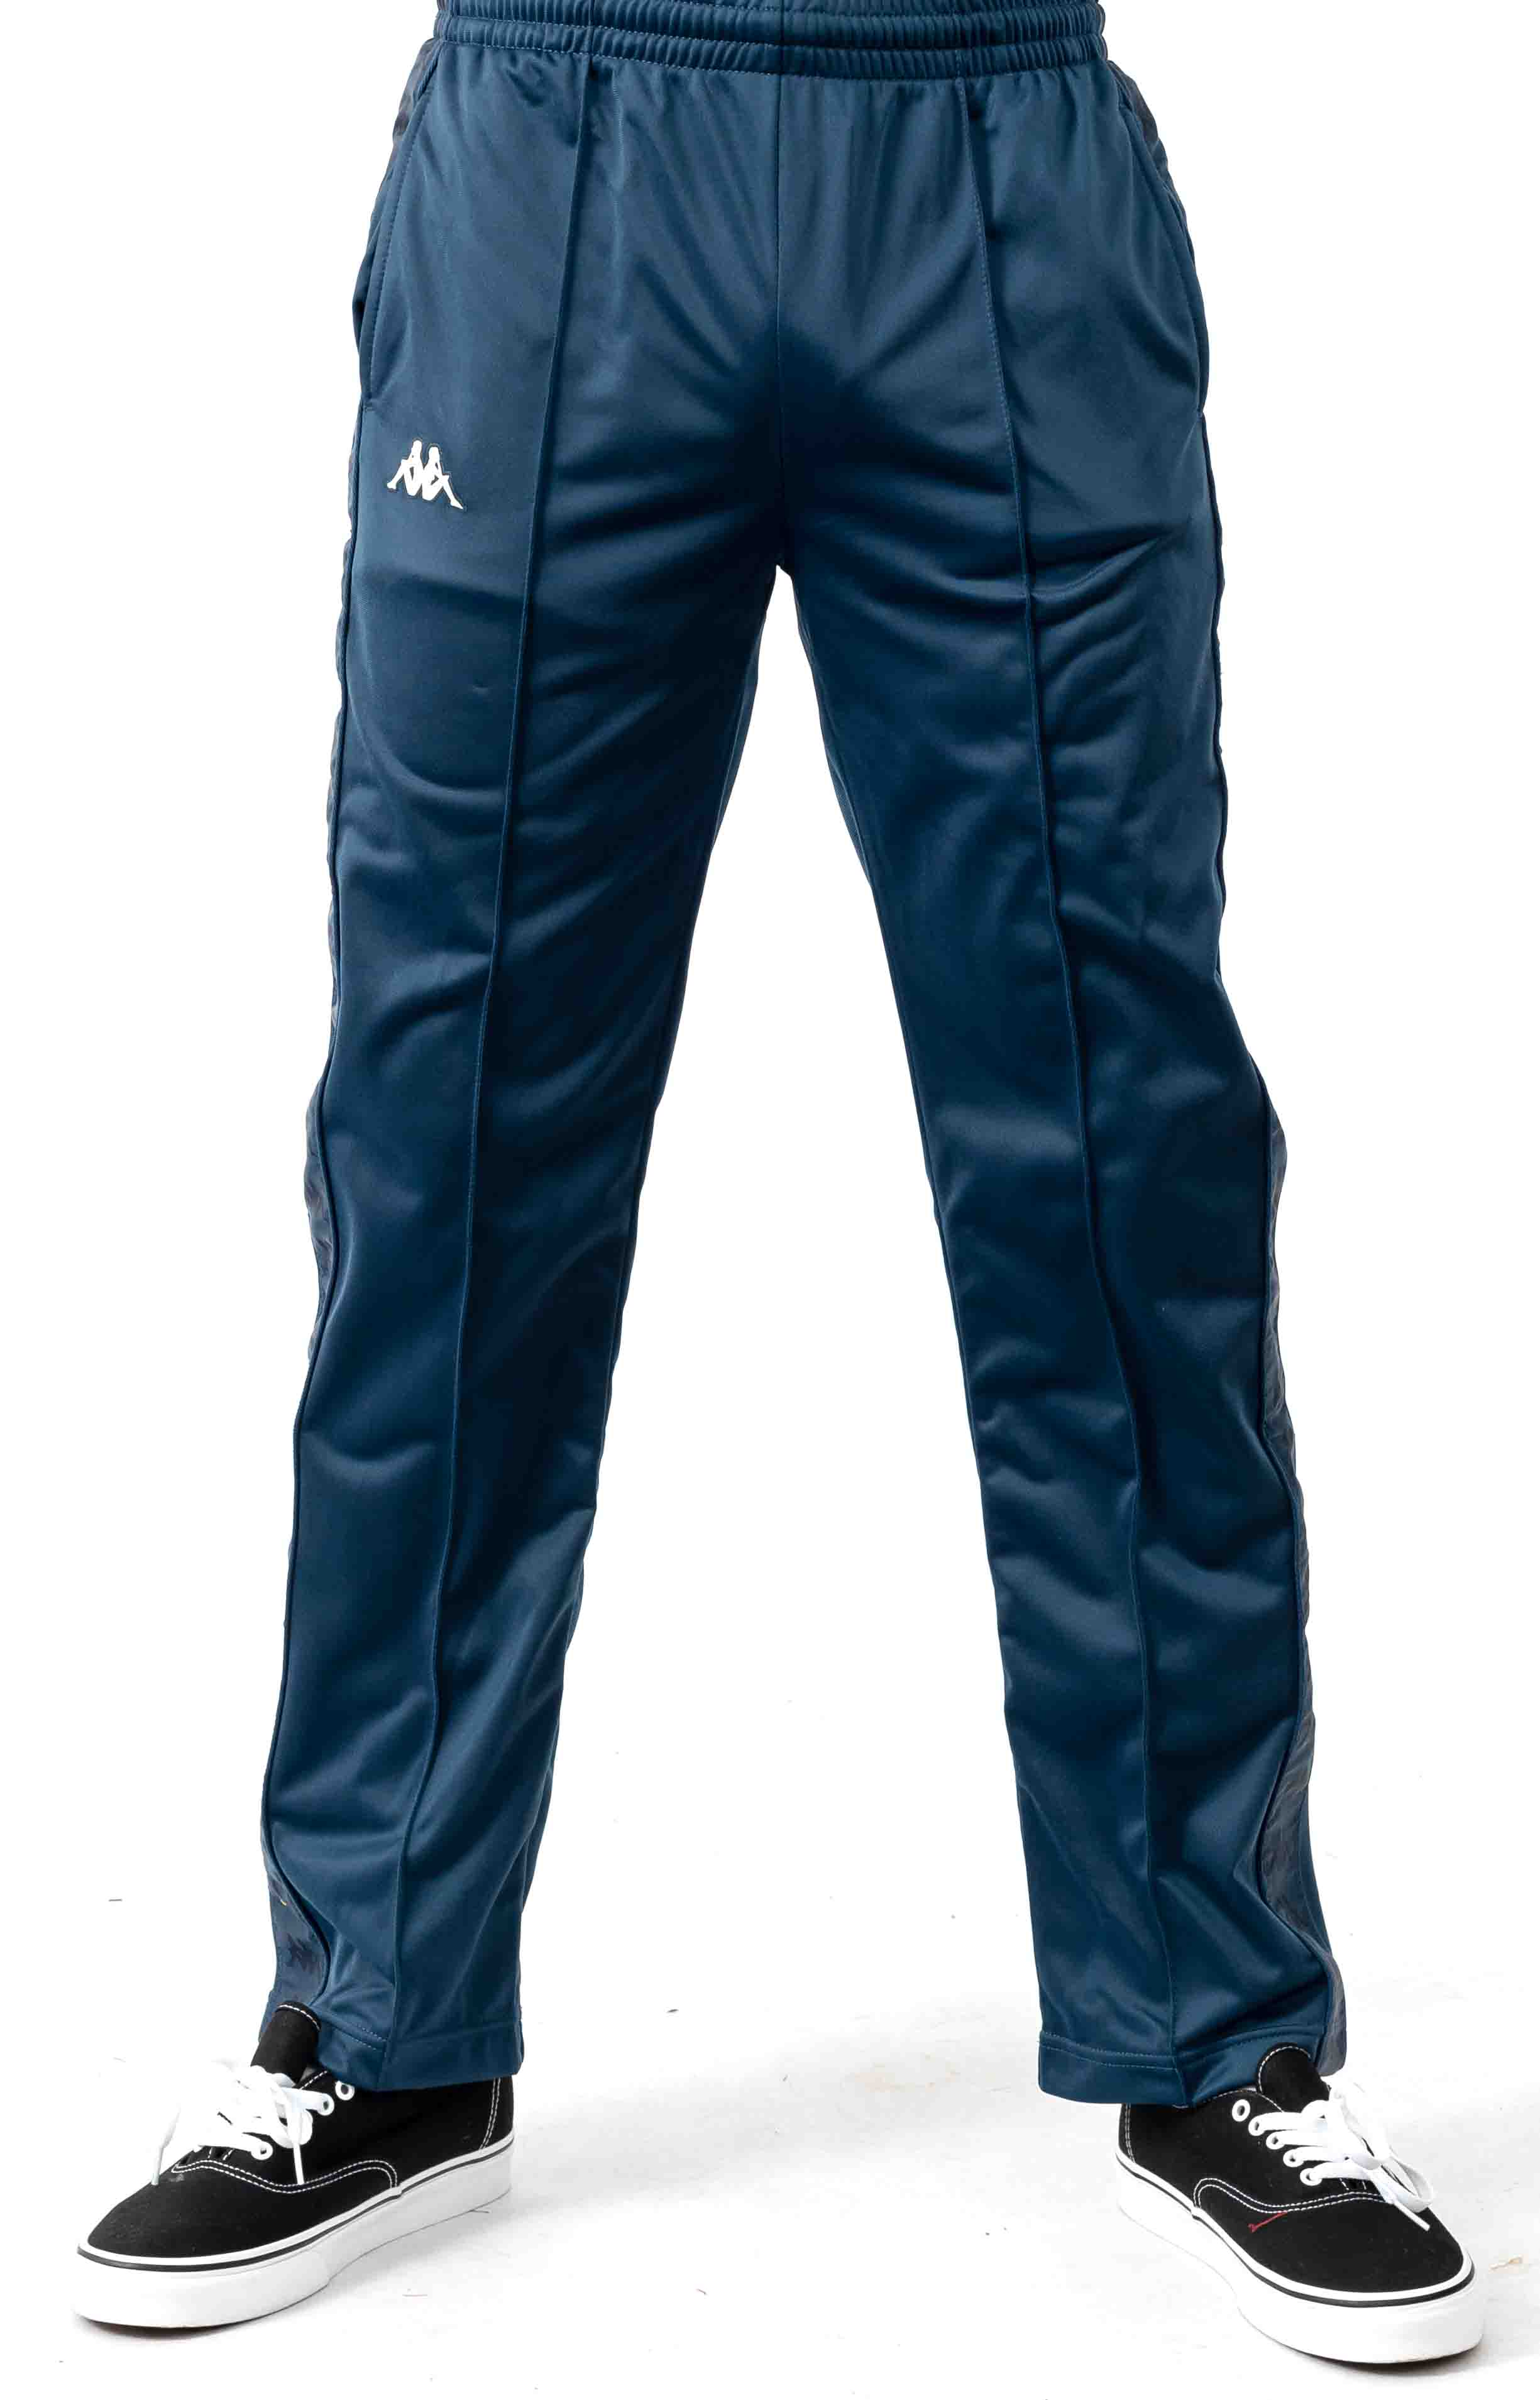 222 Banda Astoriazz Trackpant - Blue/White 2